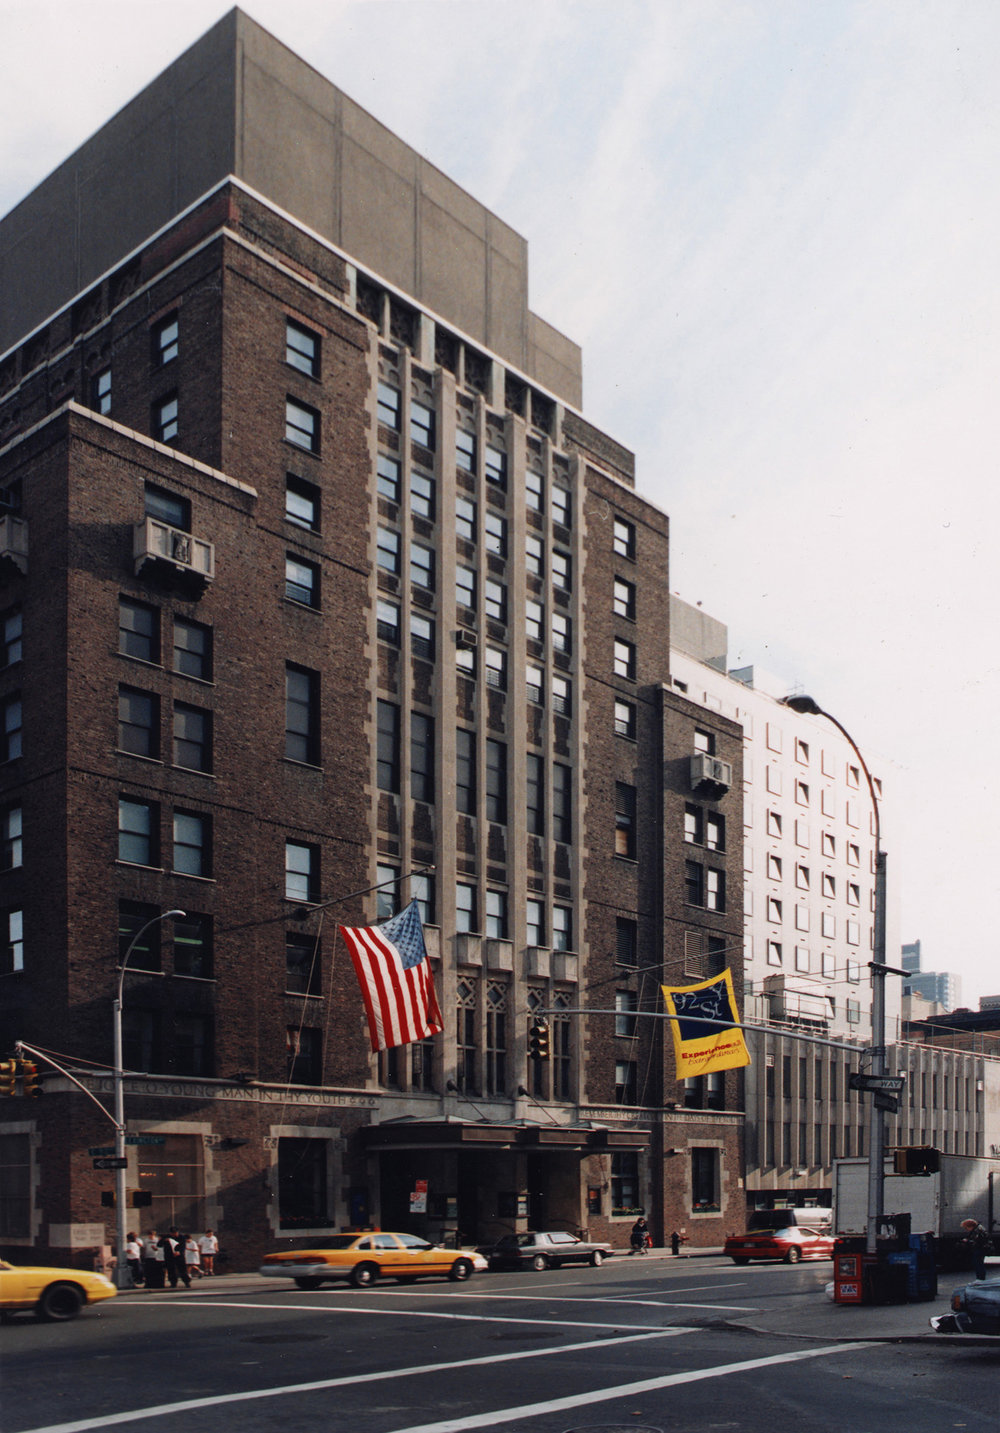 Exterior from Lexington Avenue